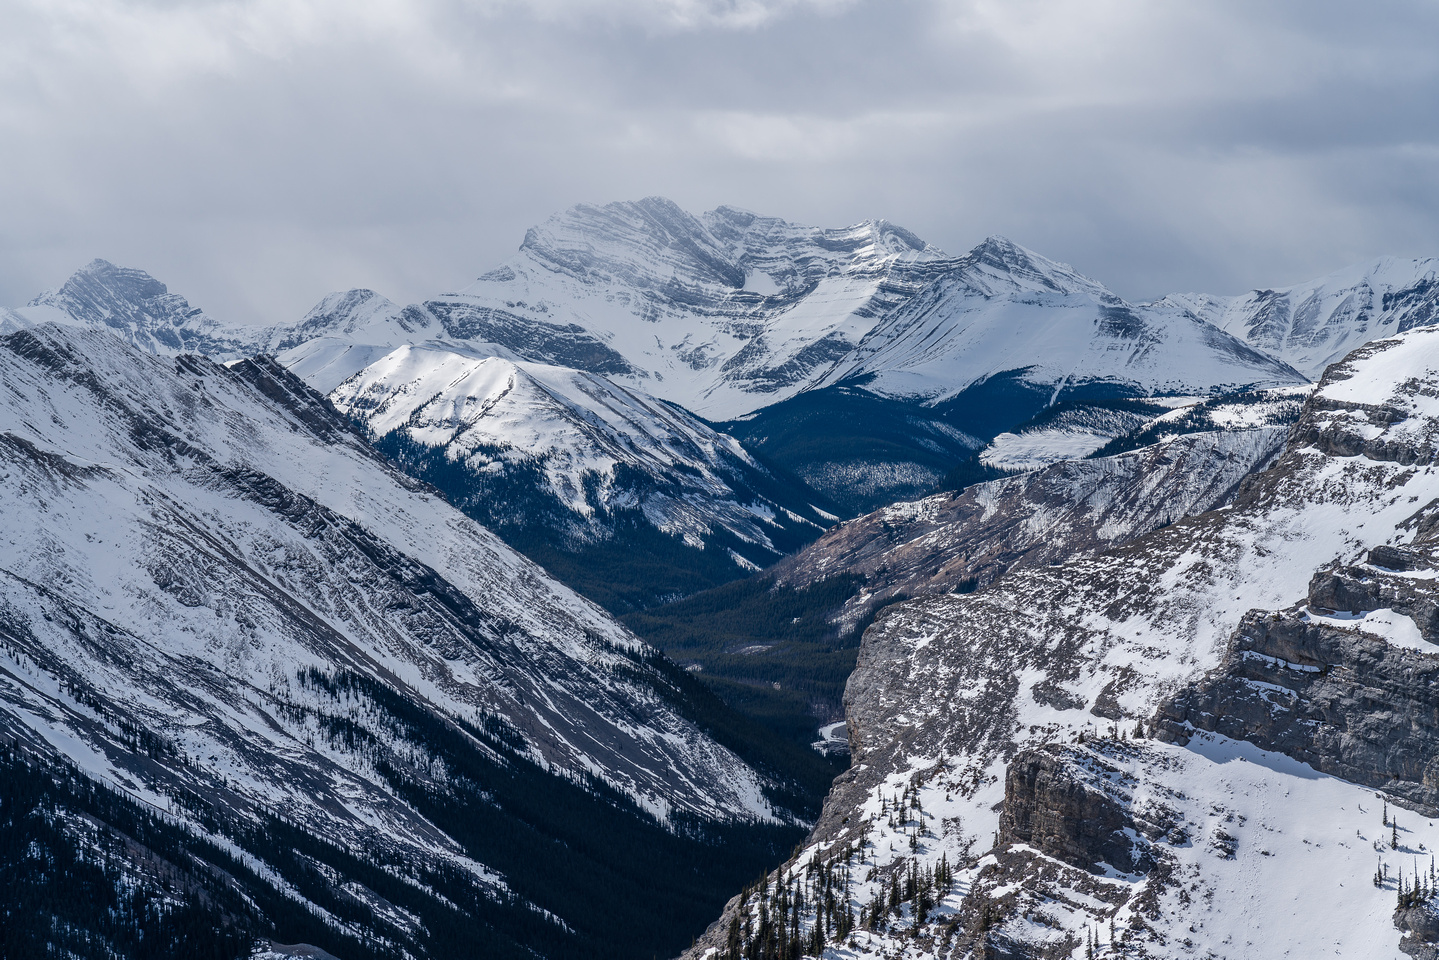 Puma Mountain is over 10,200 feet high and at the north end of the Palliser Range.